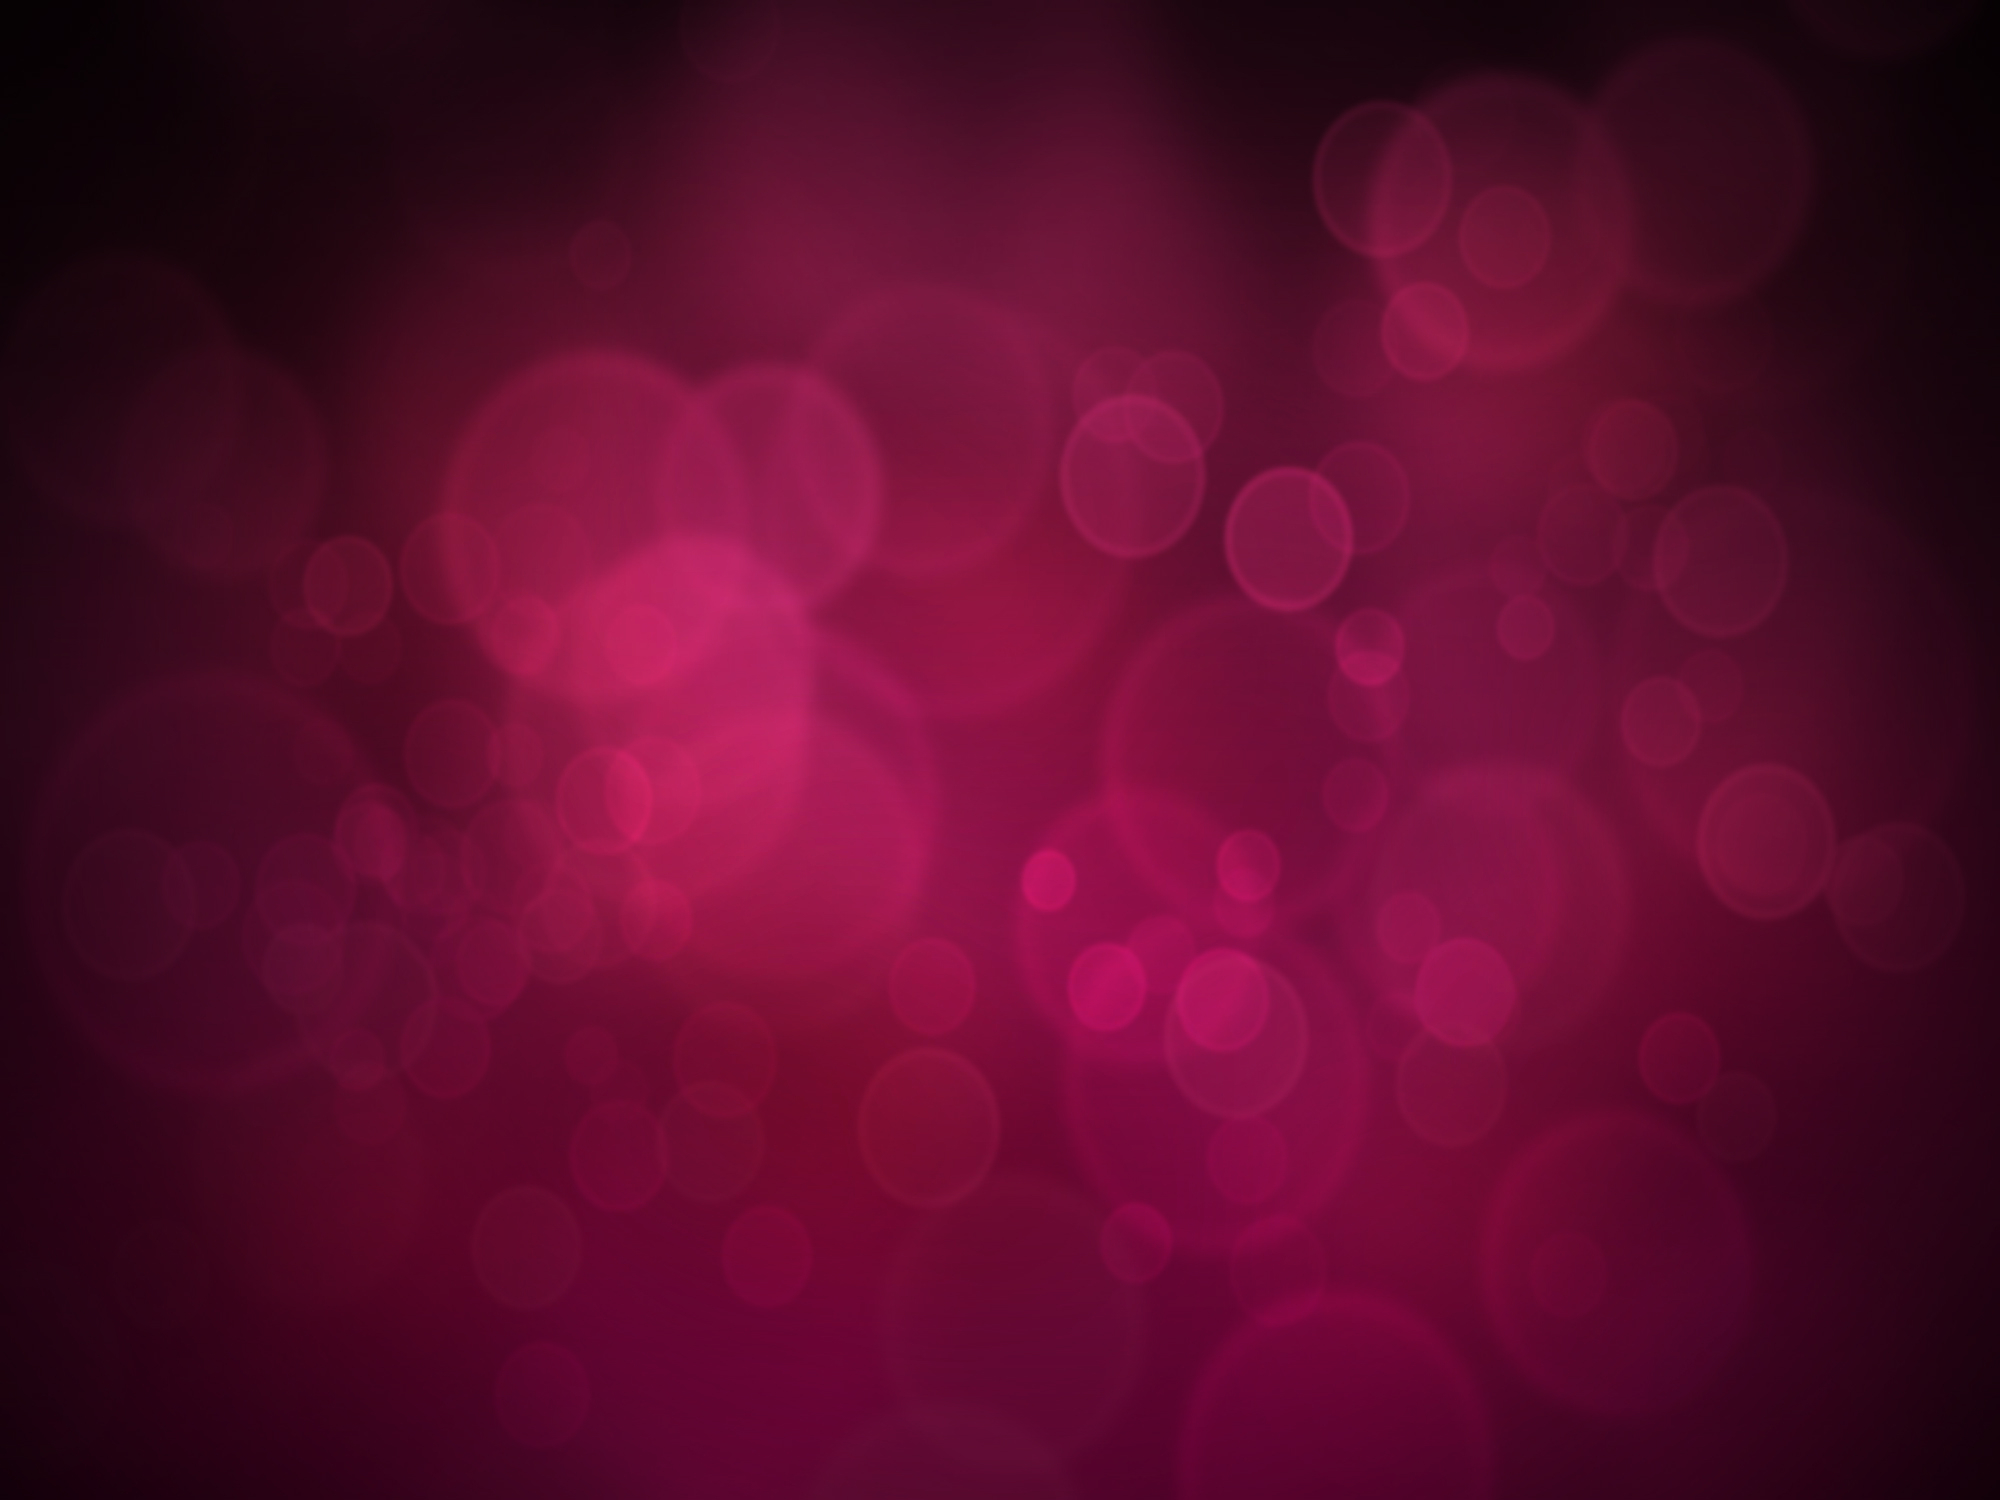 Points pink black background bubbles reflections shadow abstract 2000x1500